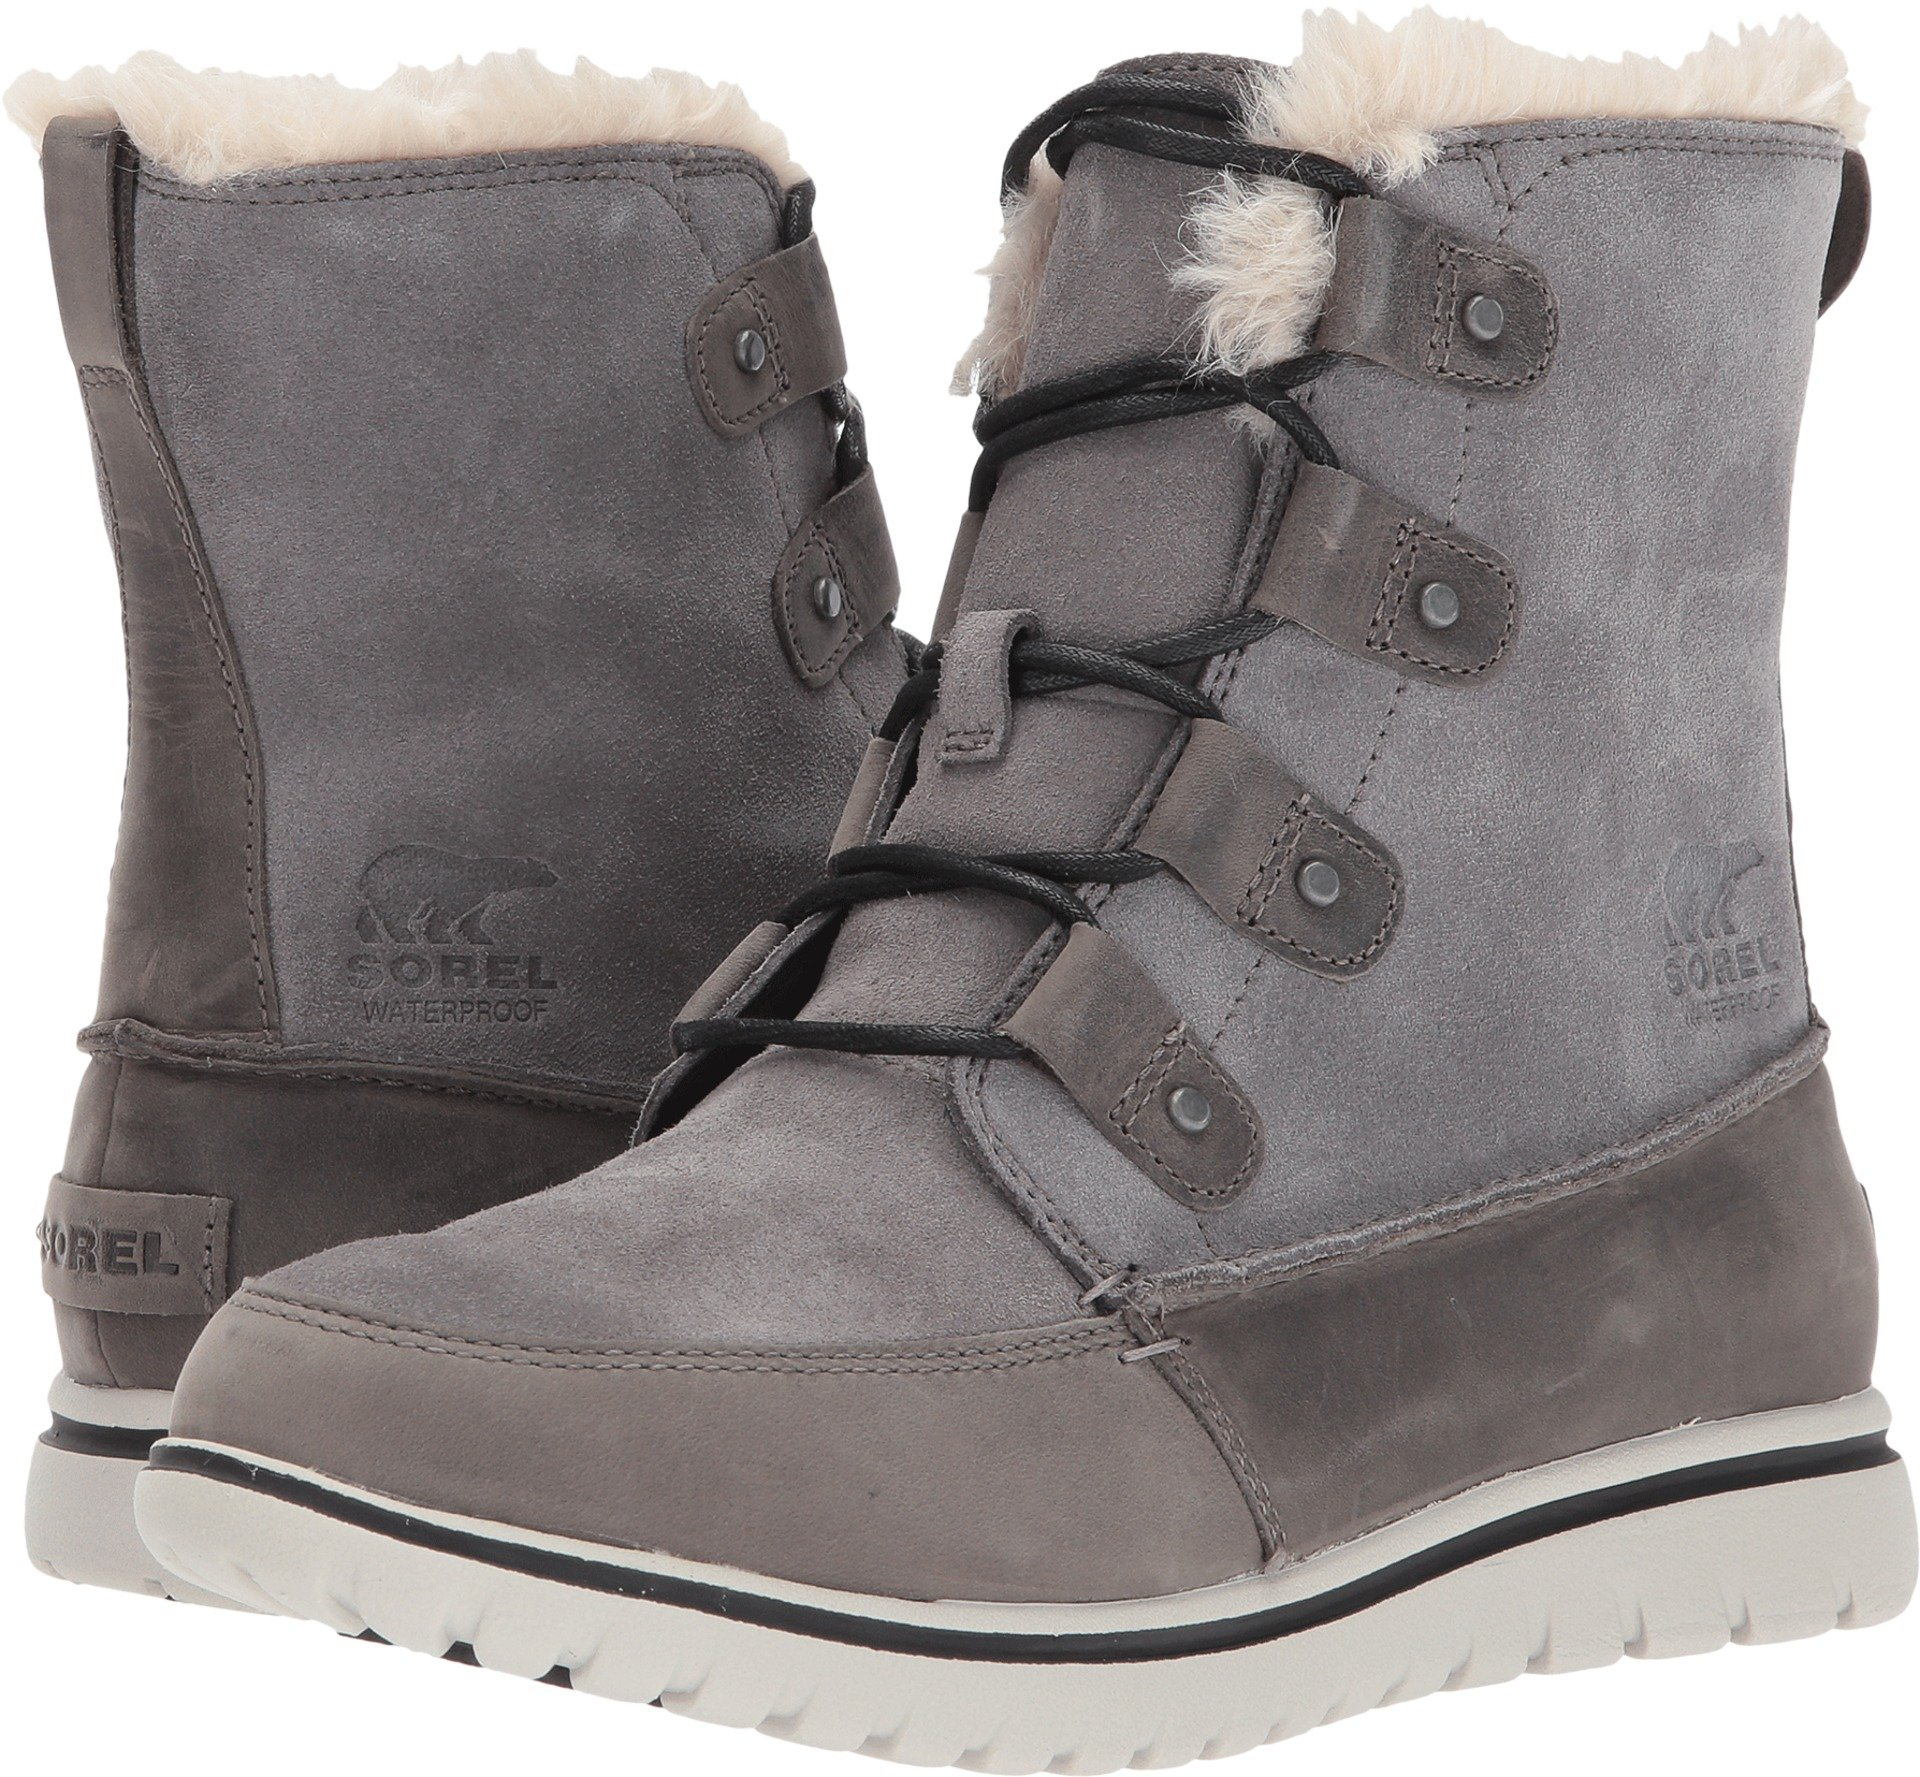 Sorel Women's Cozy Joan Booties, Quarry, 7 B(M) US by SOREL